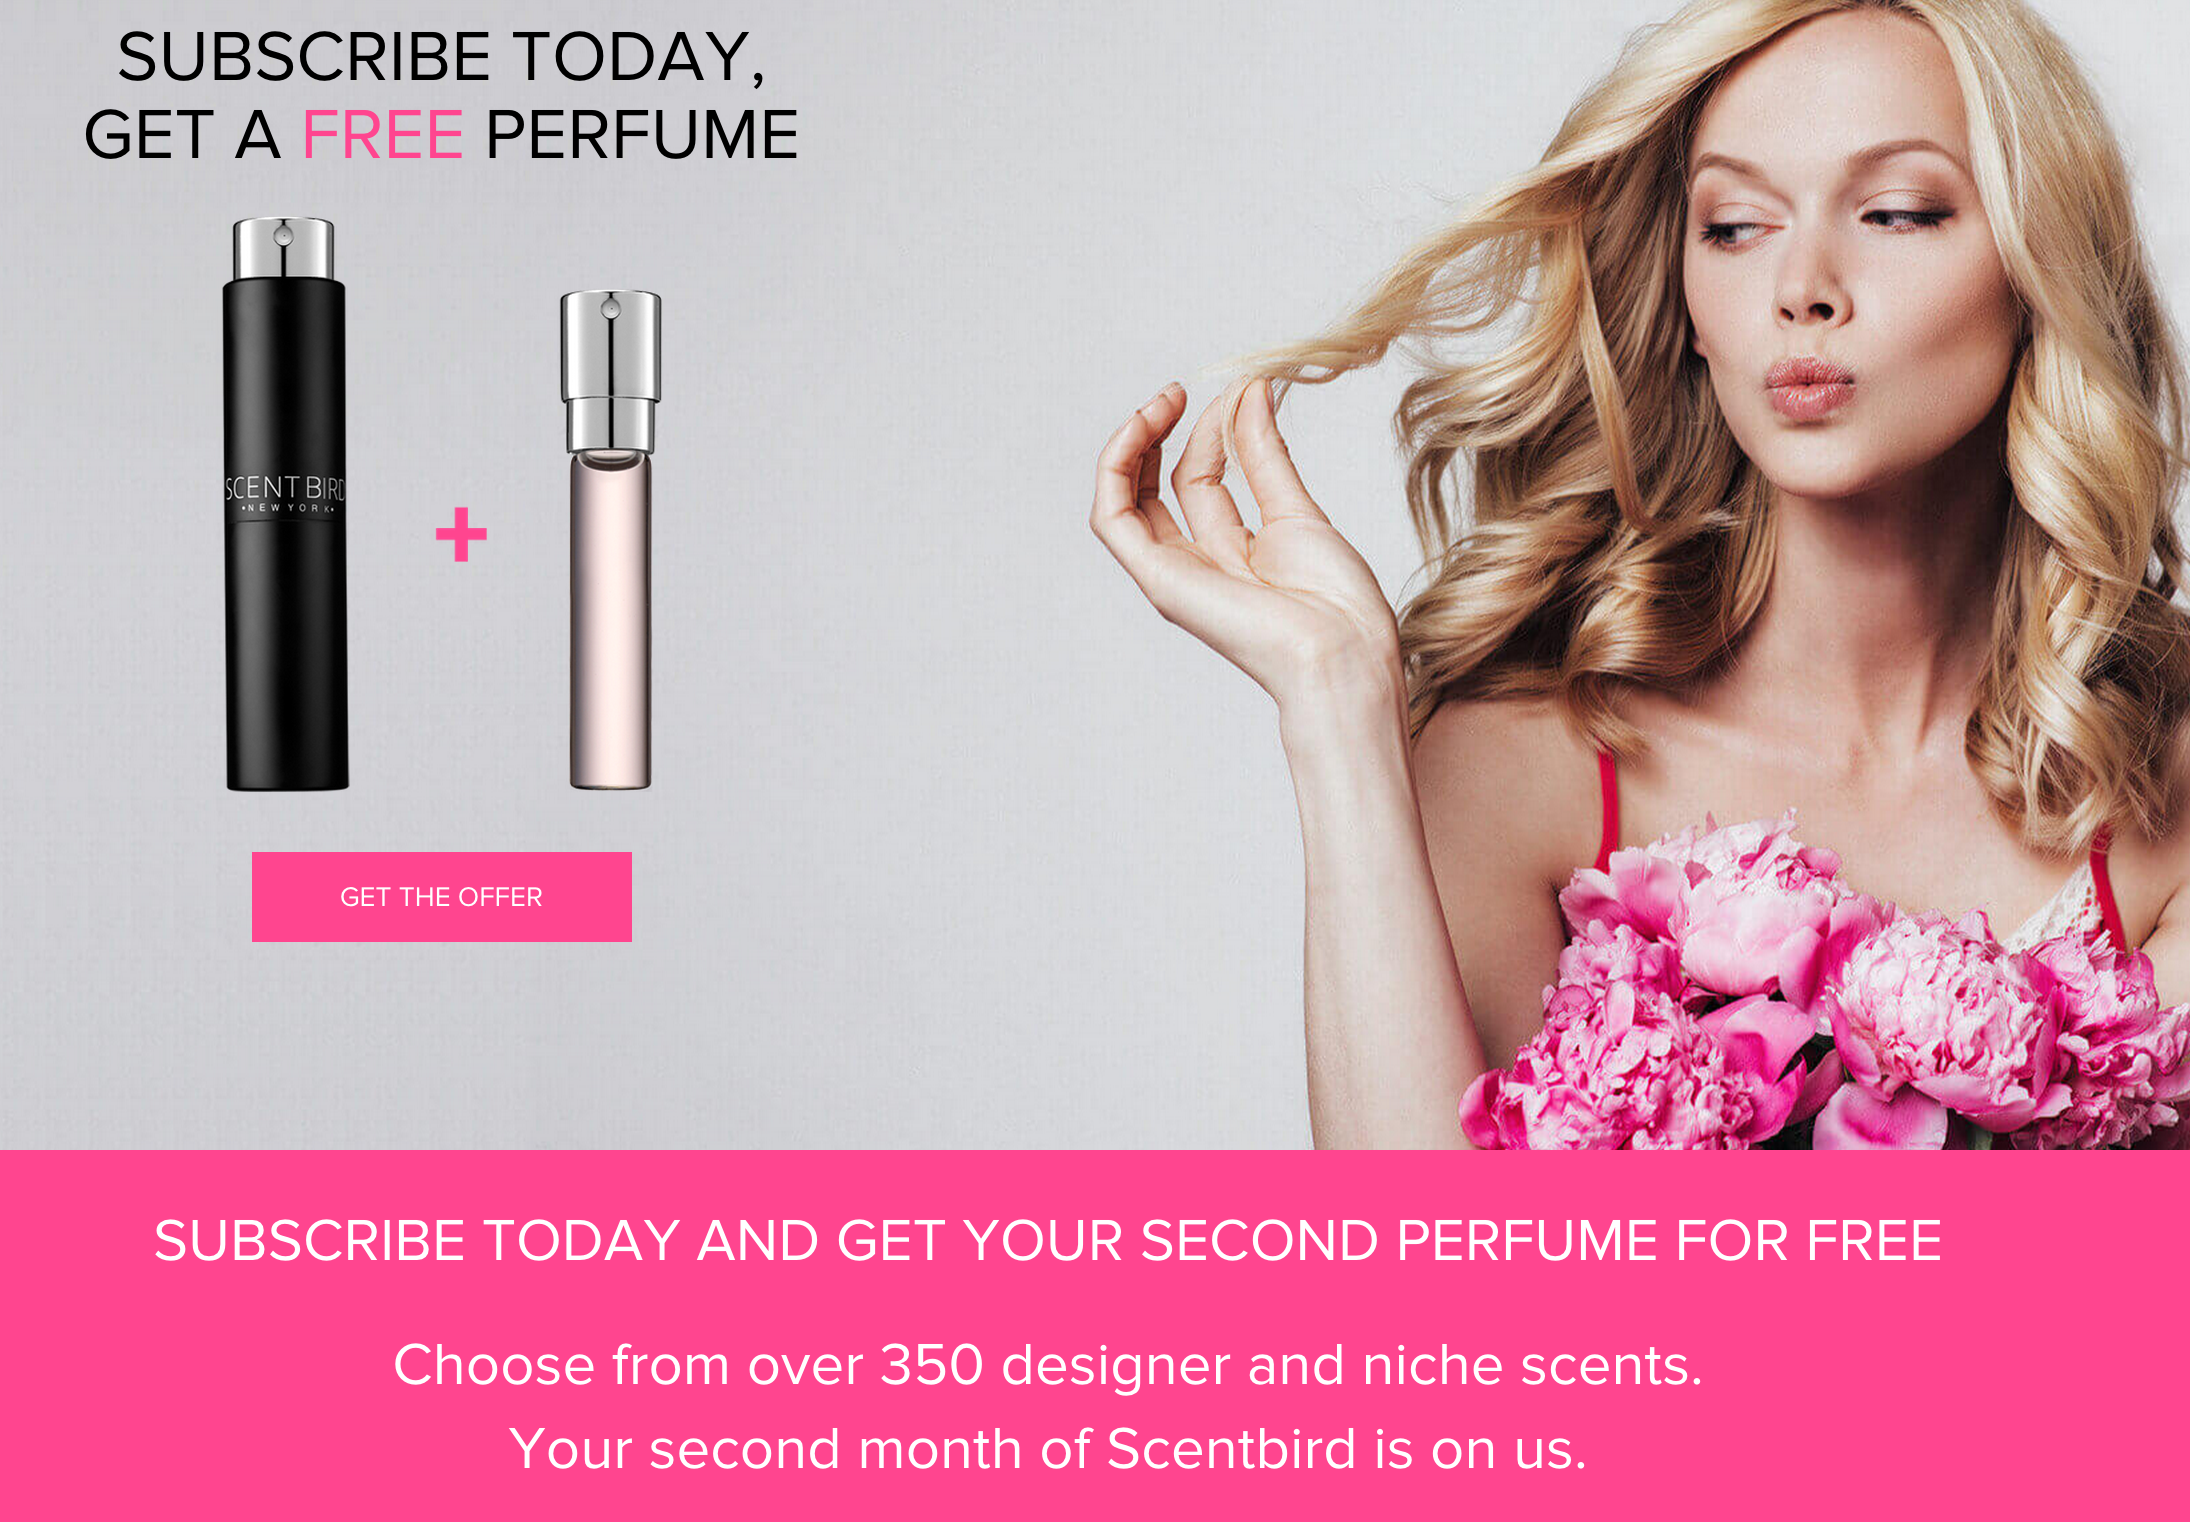 Scentbird Coupon – Get Your Second Month Free!